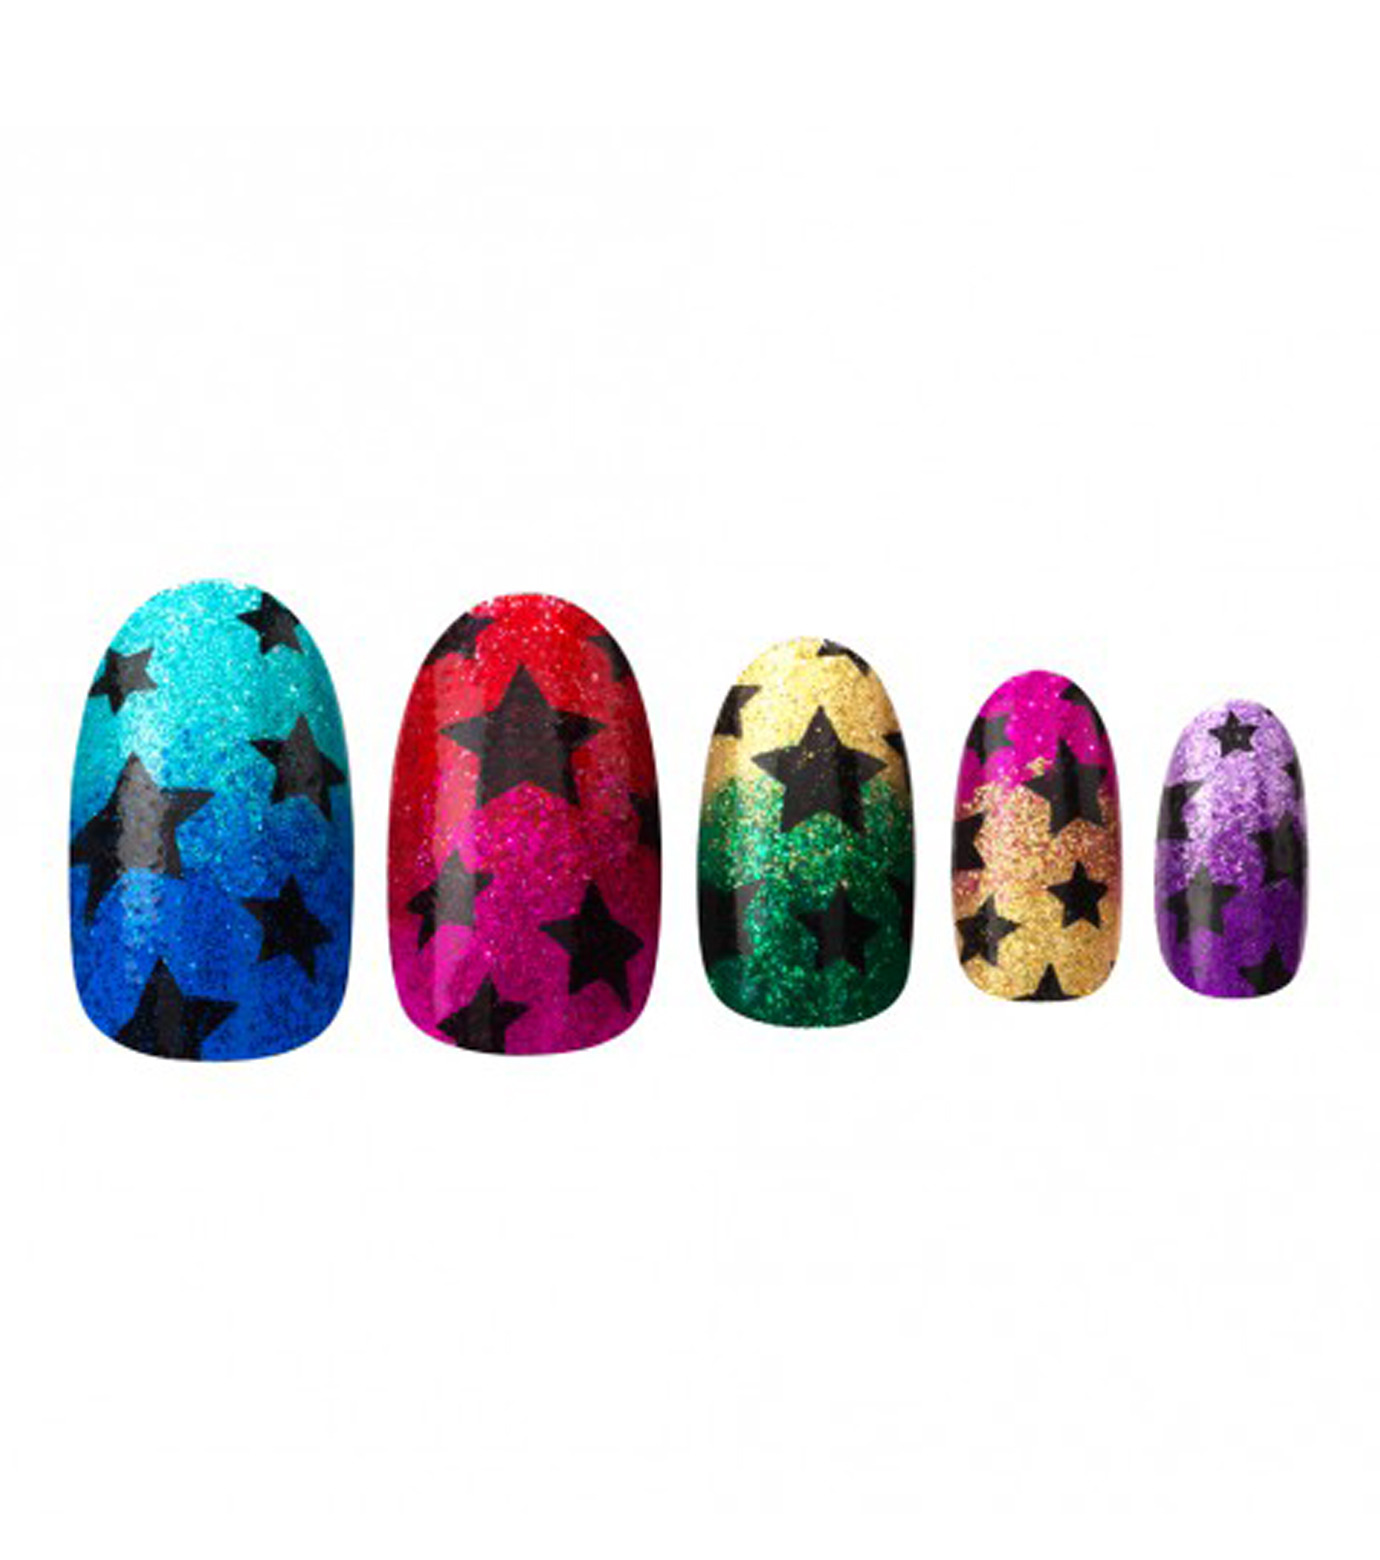 House of Holland(ハウス オブ ホーランド)のGlitter Stars-MULTI COLOUR(MAKE-UP/MAKE-UP)-4016258-9 拡大詳細画像3